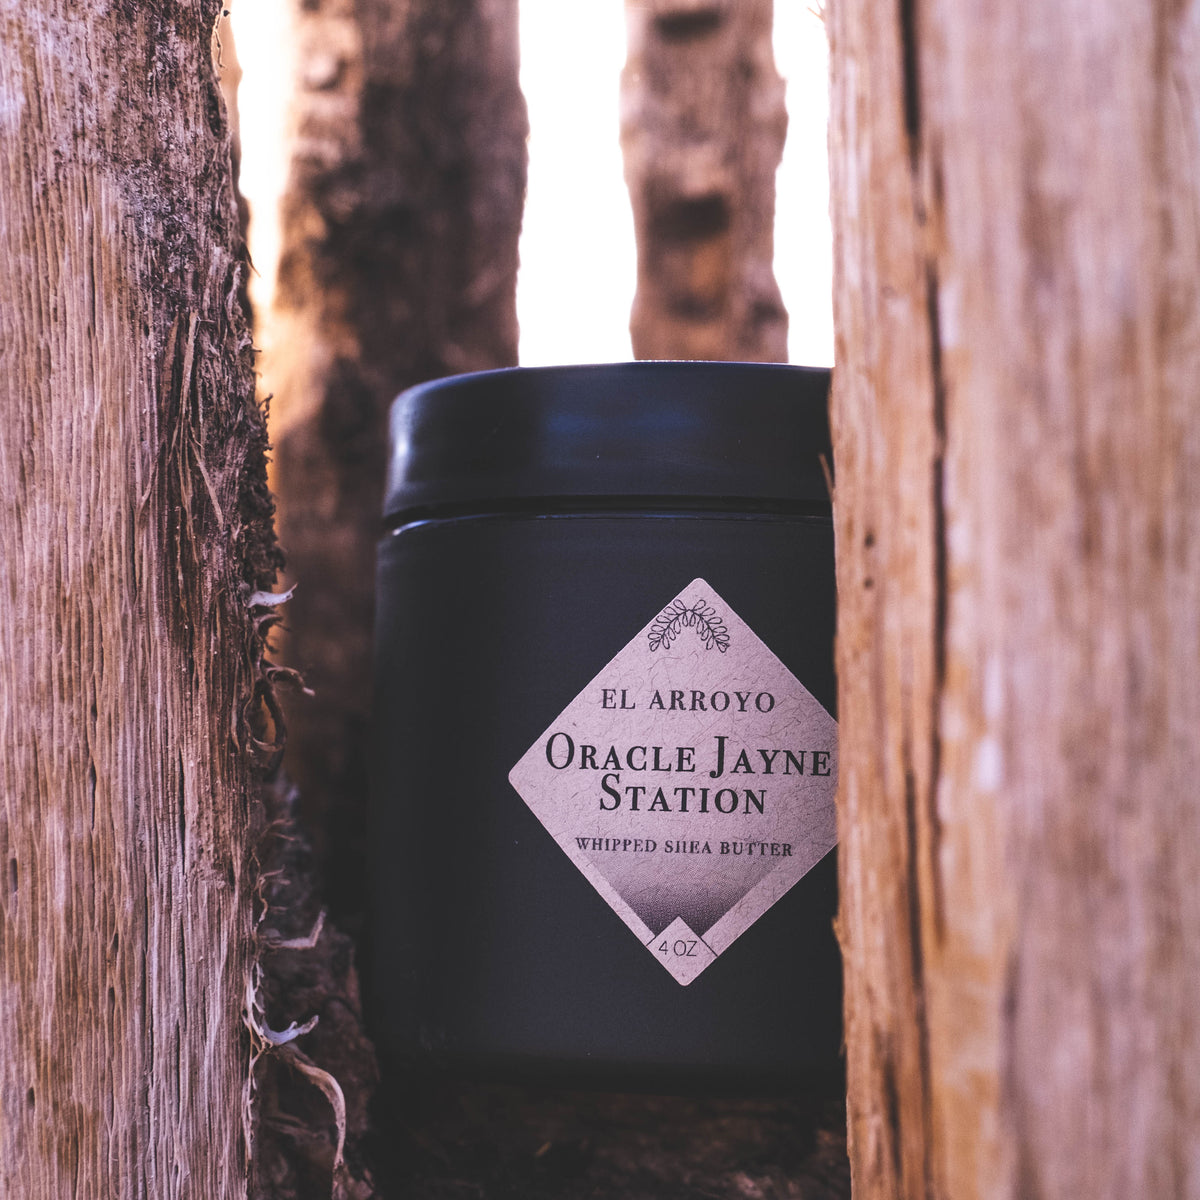 El Arroyo Whipped Shea Butter